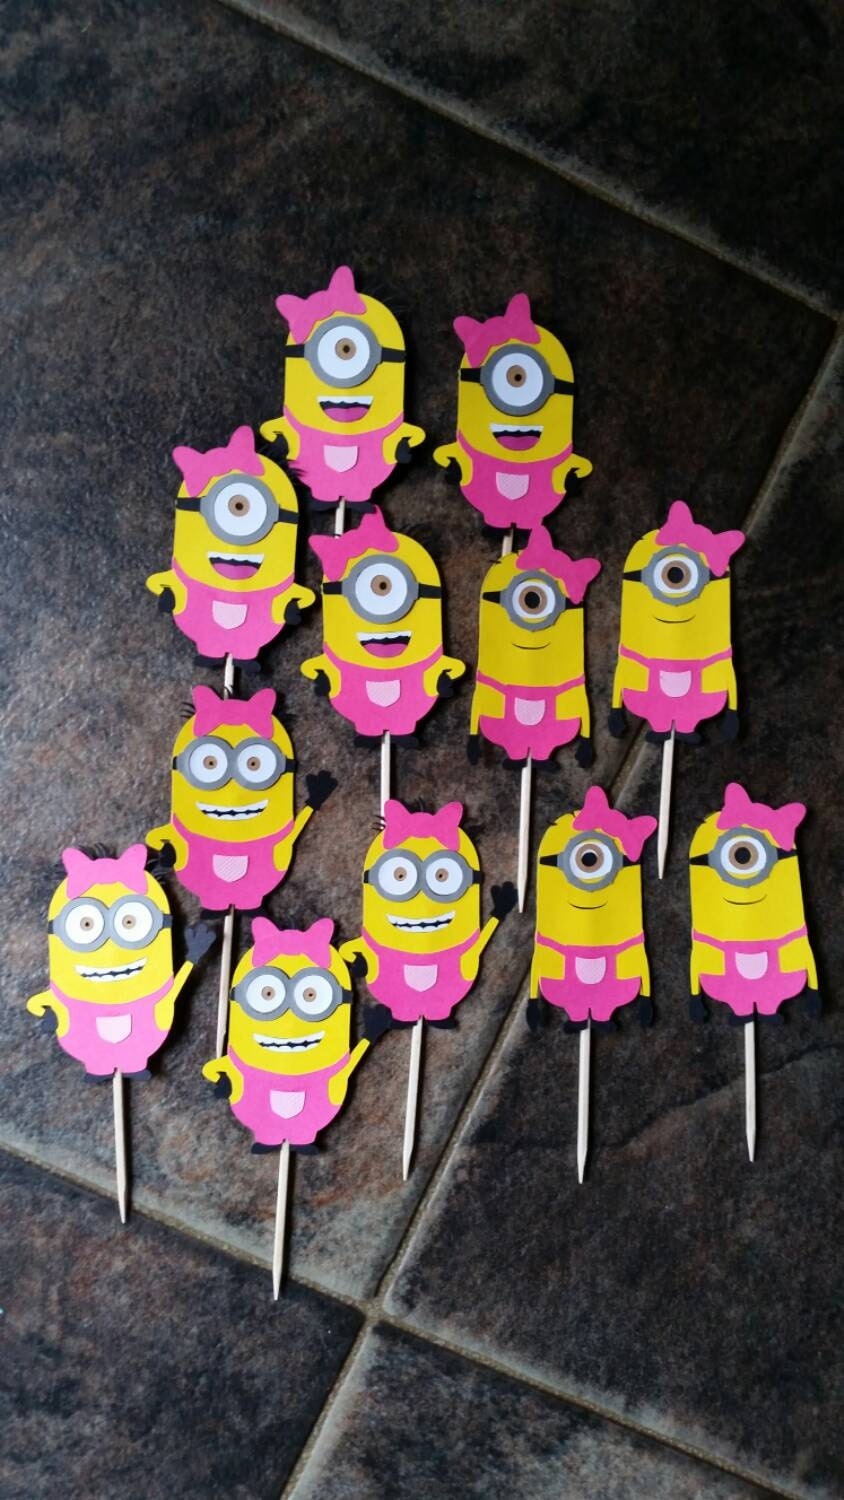 Google themes minions - Girl Minion Cupcake Toppers Hot Pink With Hair Bow Diecut Cardstock Birthday Party Decorations Picks 3 Kinds Set Of 12